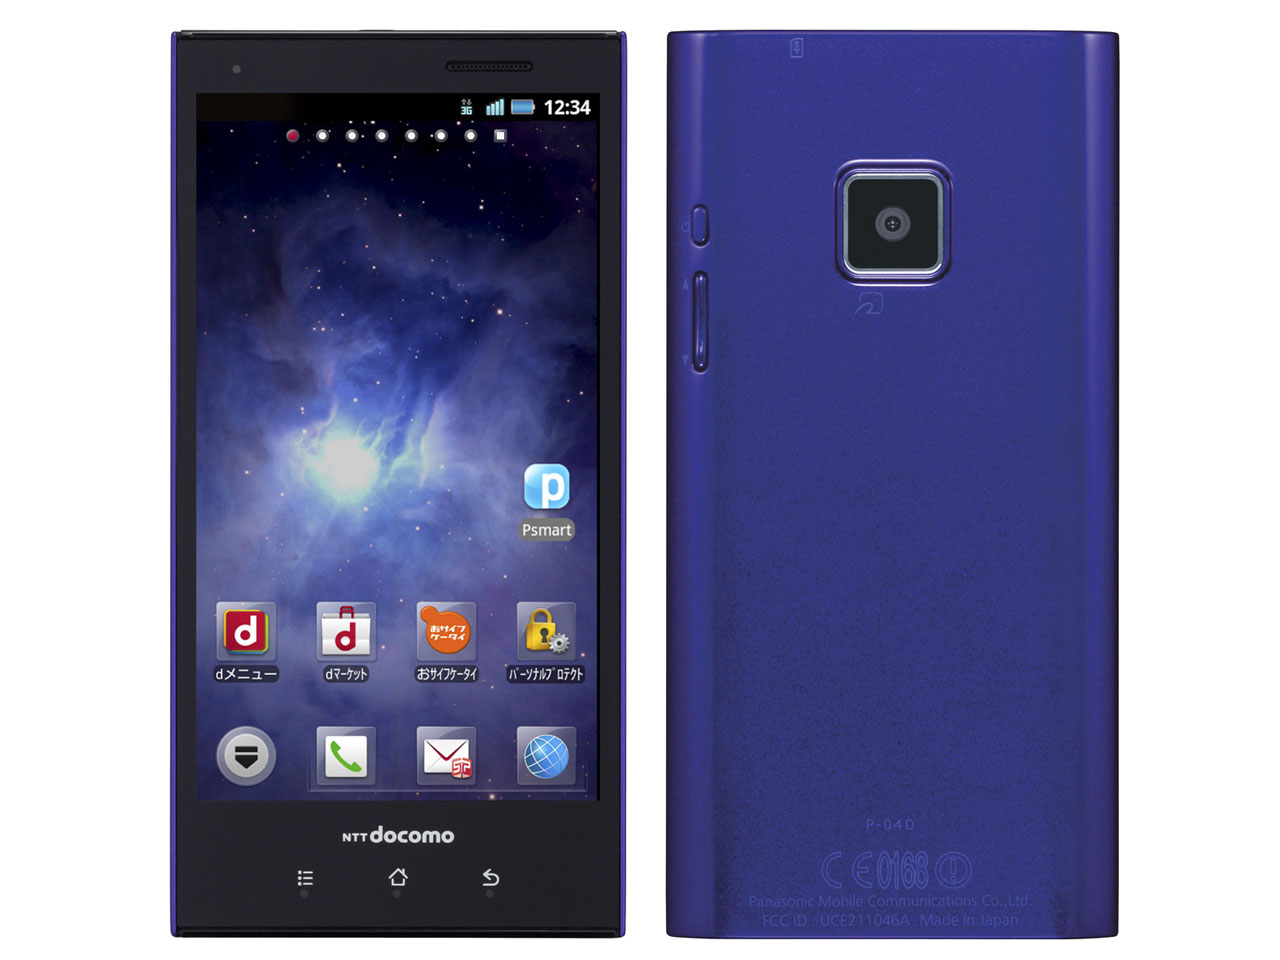 Docomo-Panasonic-P-04D-Deep-Purple-Unlocked-Android-Smartphone-from-Japan-F-S